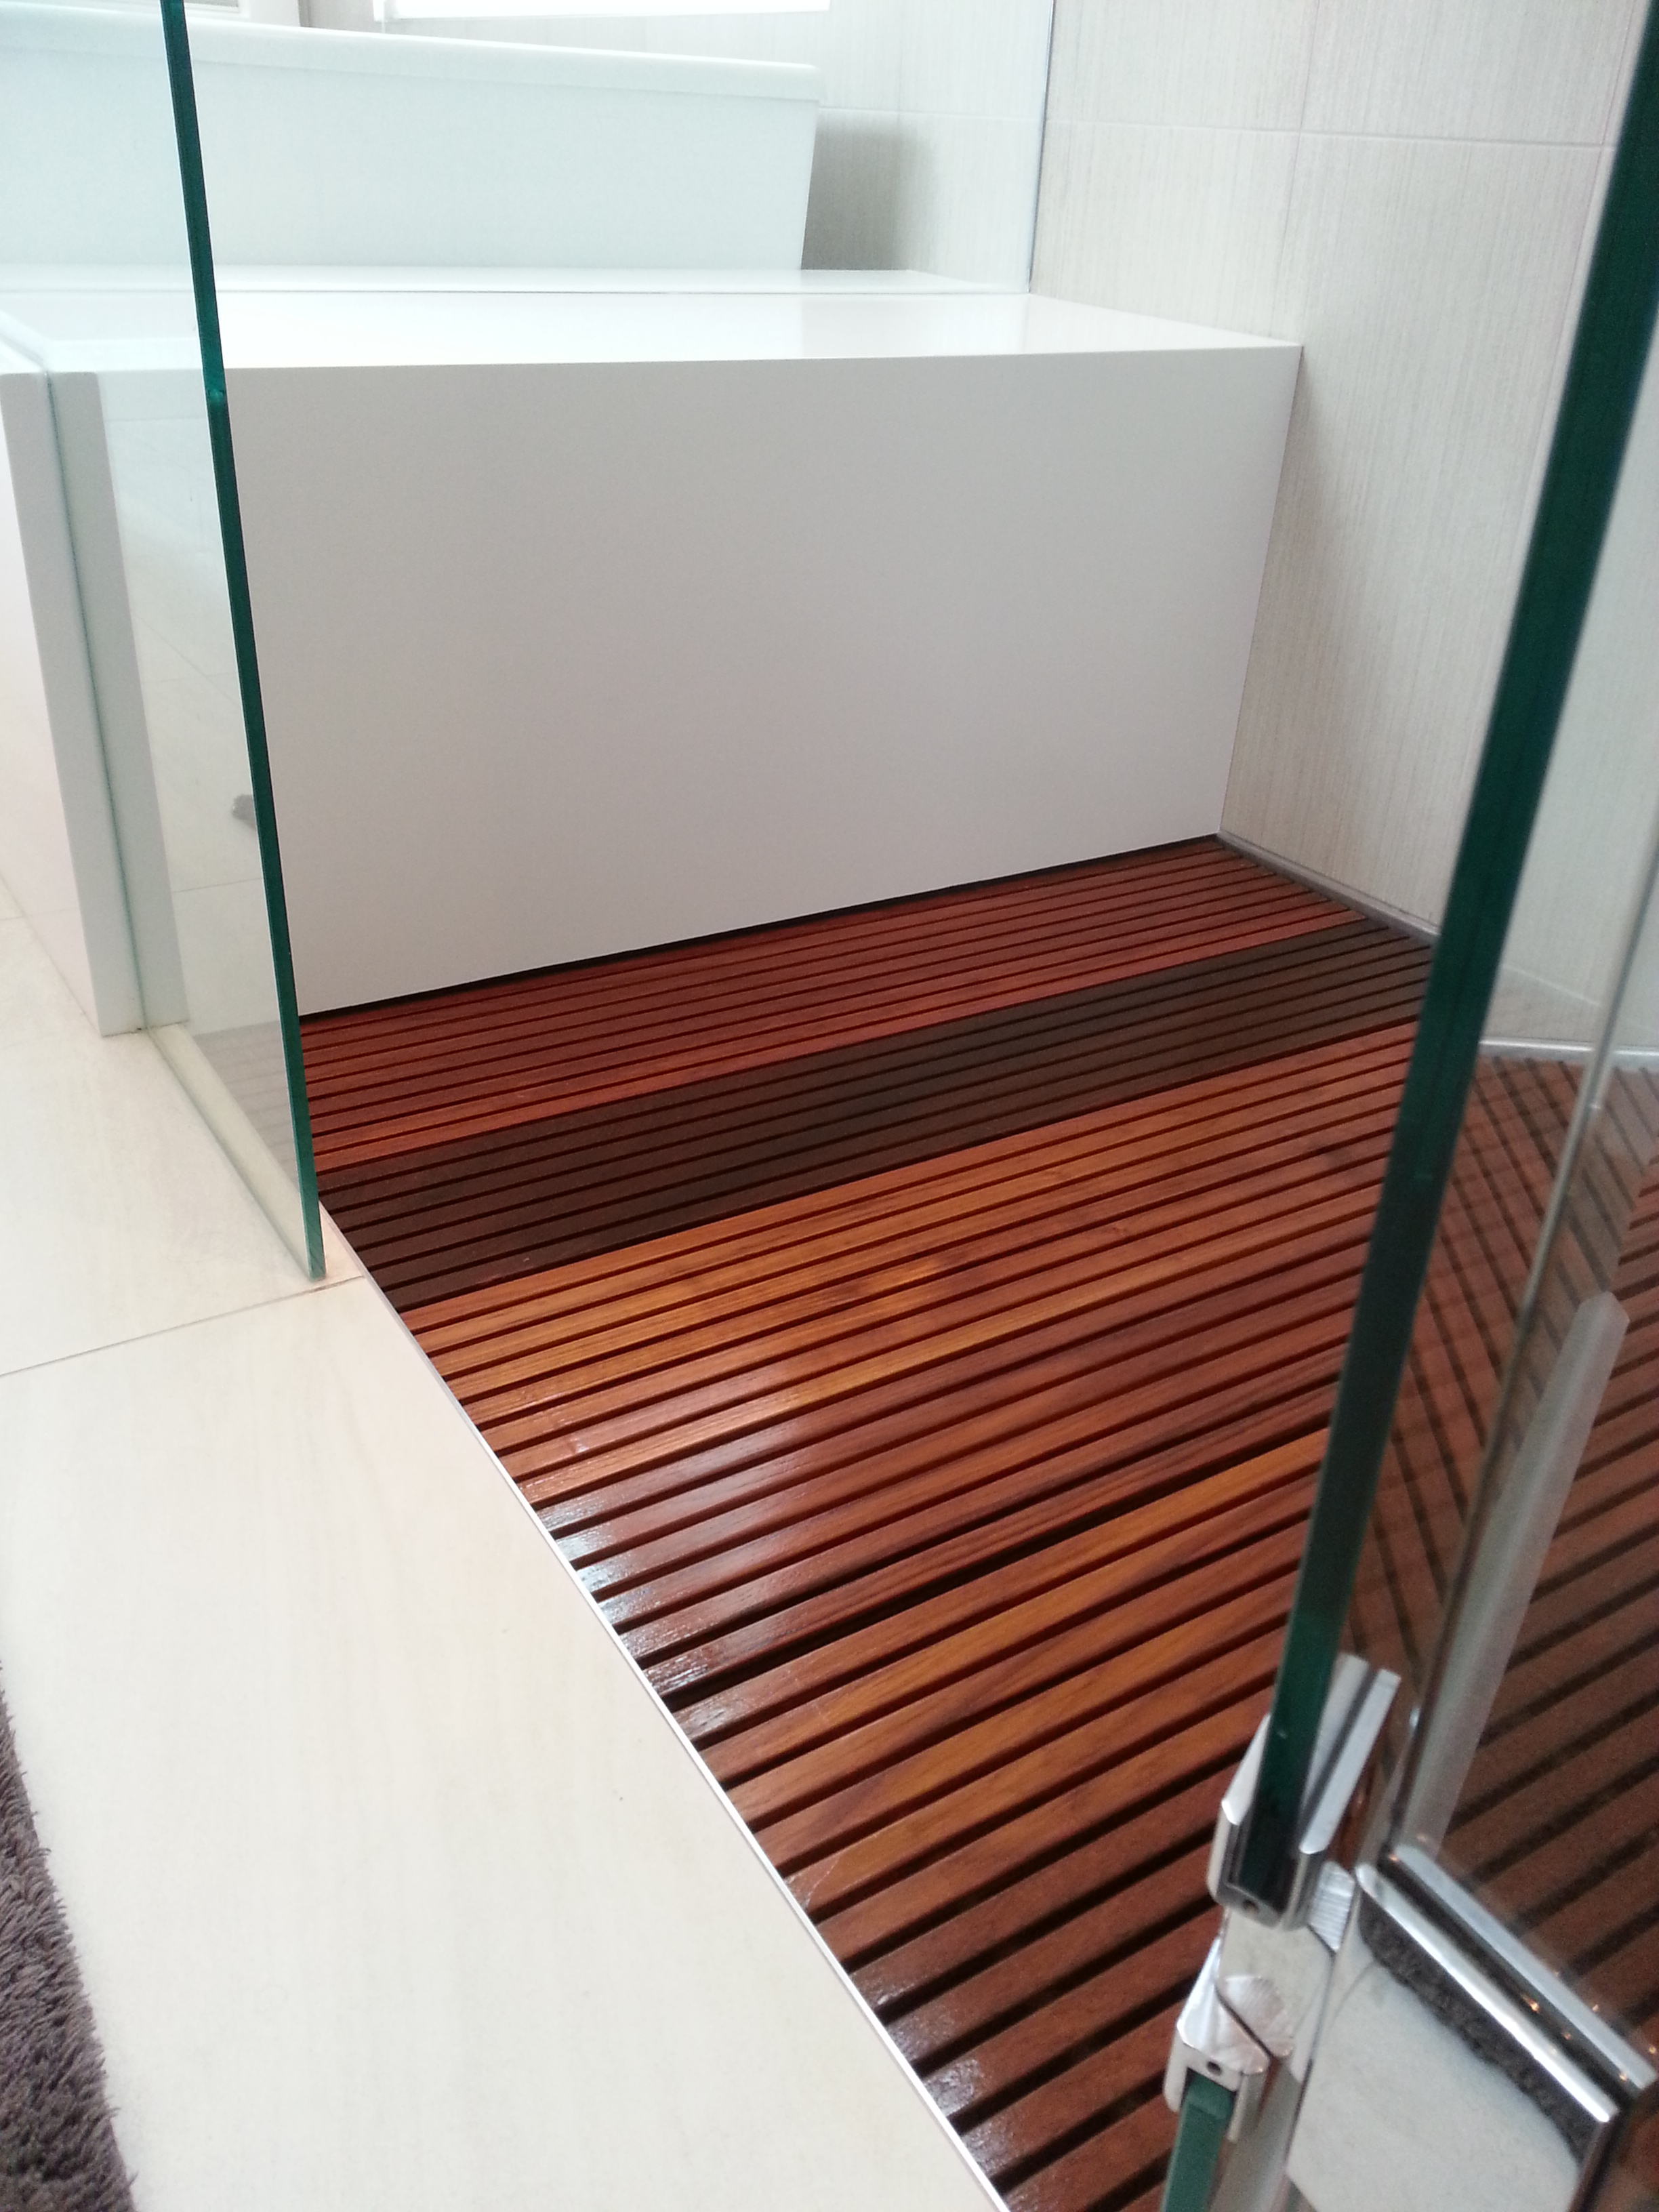 The shower floor is made up of 60 Teak boards.